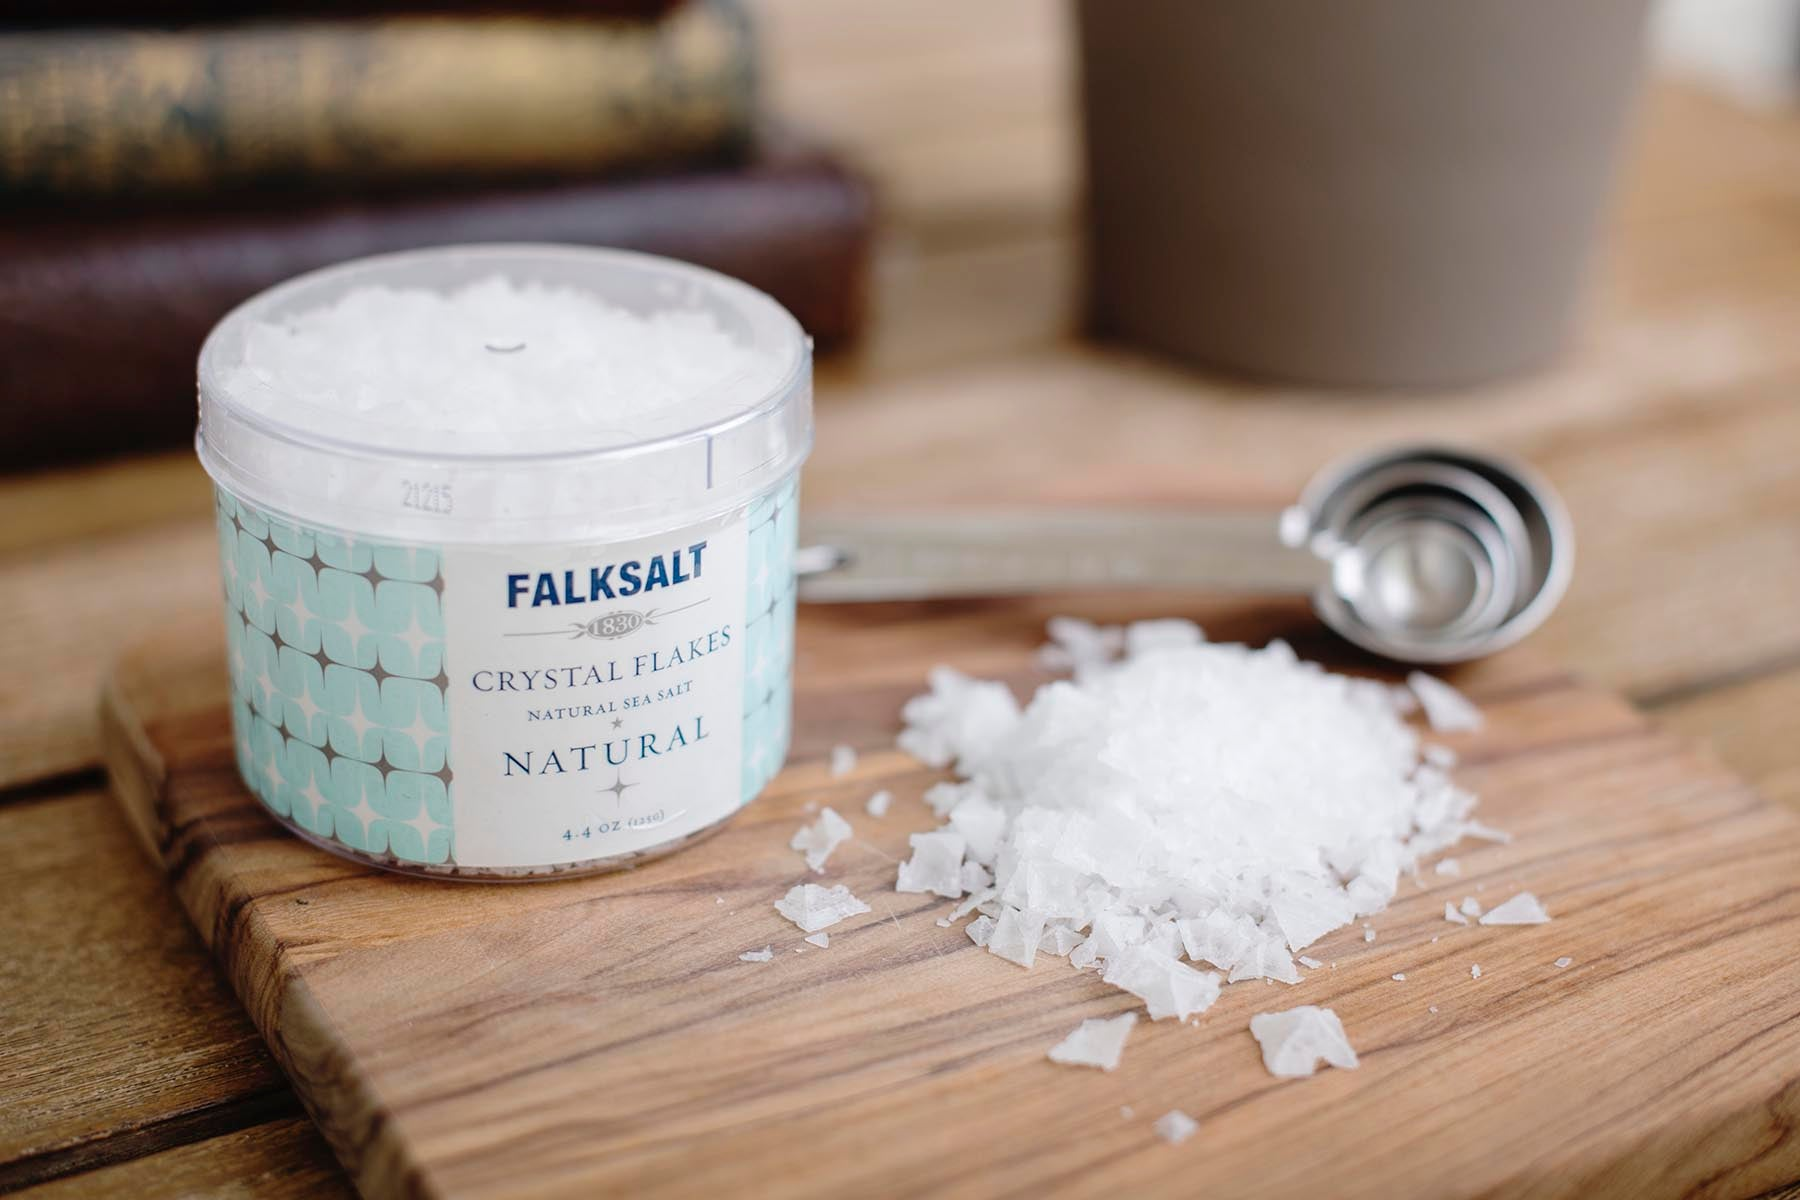 <a href='http://www.falksalt.com/us/' target='_blank'><b>Falk Salt Natural Sea Salt Crystal Flakes</b></a><br>Made from evaporated pure sea water until there's very little left but salt. These are carefully raked out by hand and then sealed in this beautiful packaging. Considered by many professionals to be the finest salt money can buy. Use it as a finishing salt and experience the crispy sensation next time you cook.